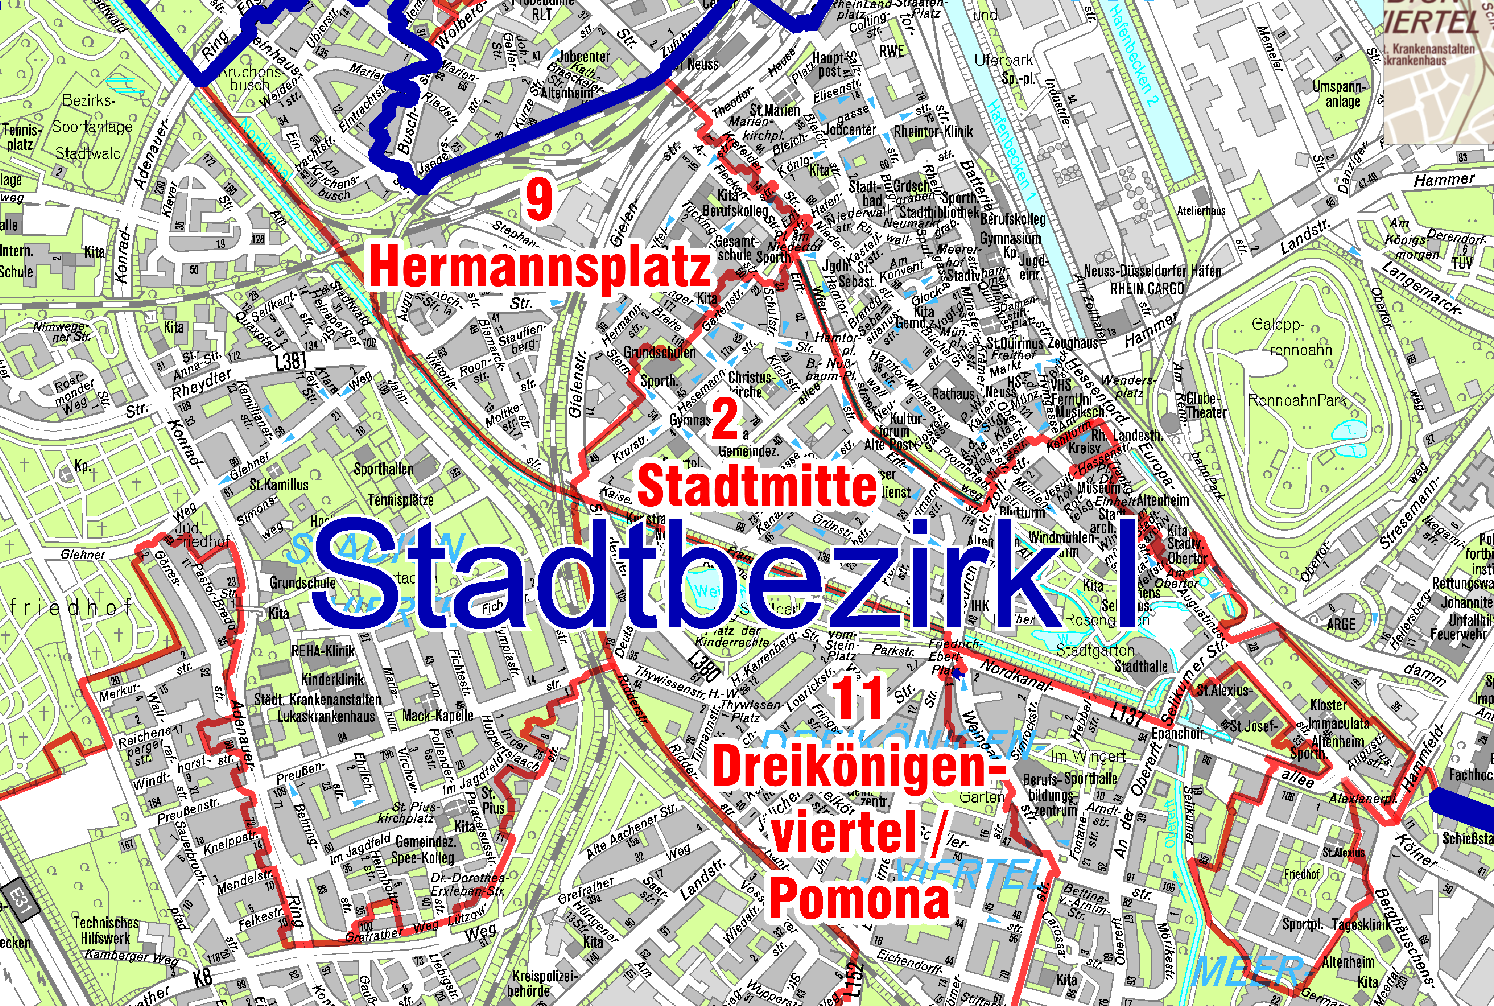 stadtplan-viewer-2020--wahlkarte-2020.jpg